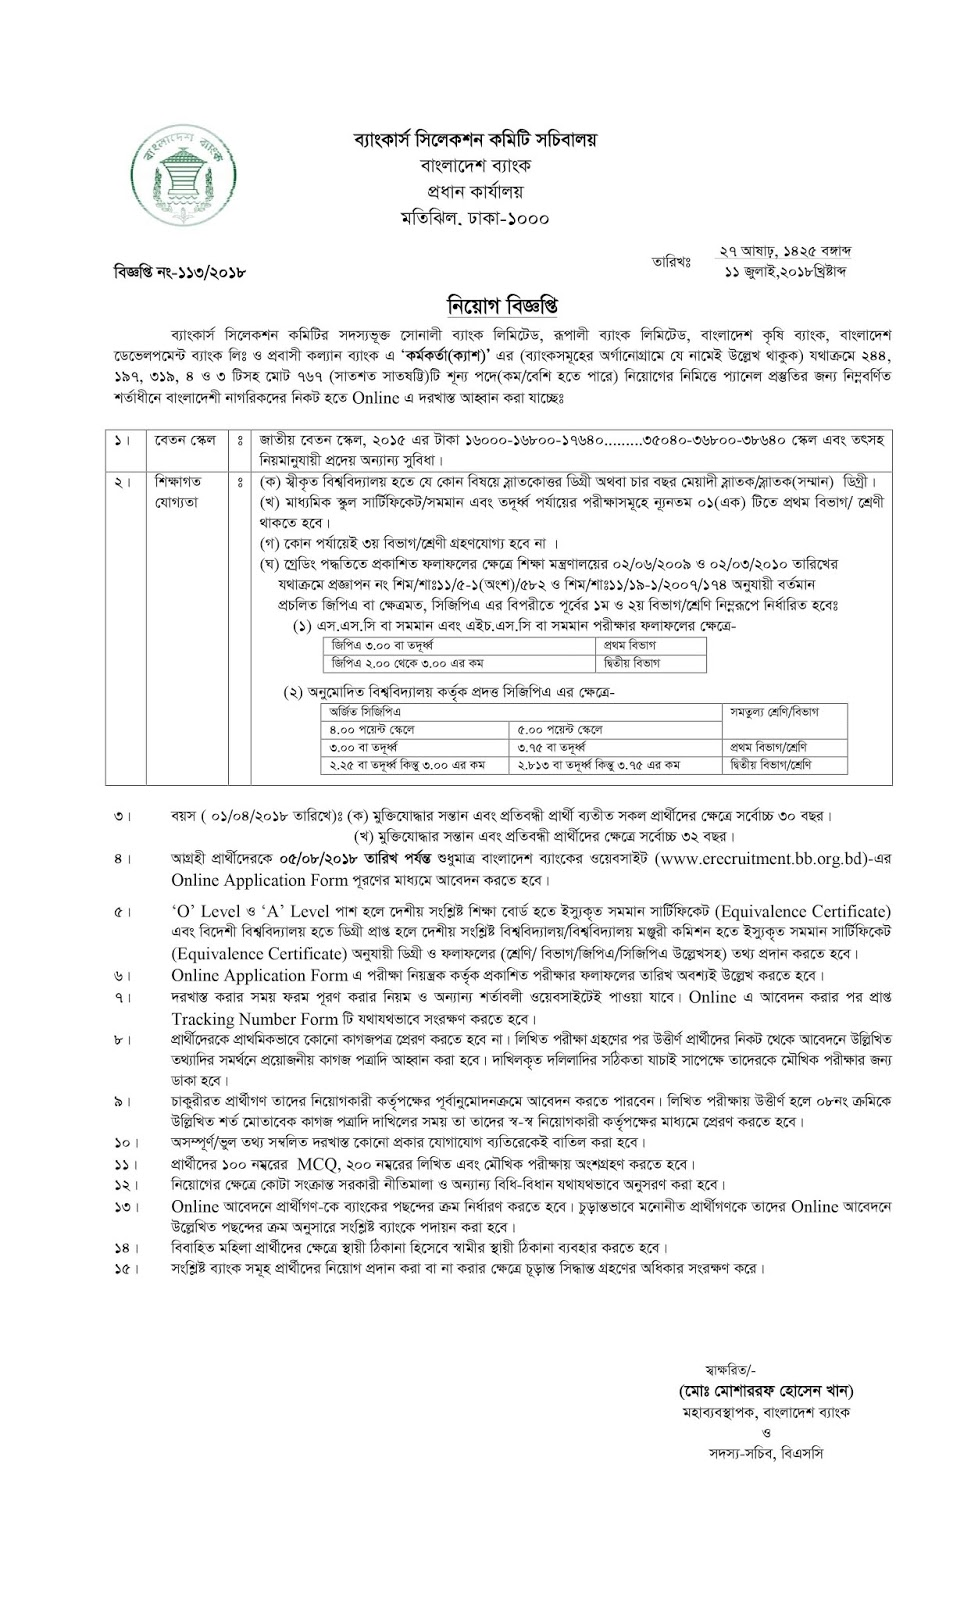 Bangladesh Development Bank Limited (BDBL) Officer (Cash) Job Circular 2018